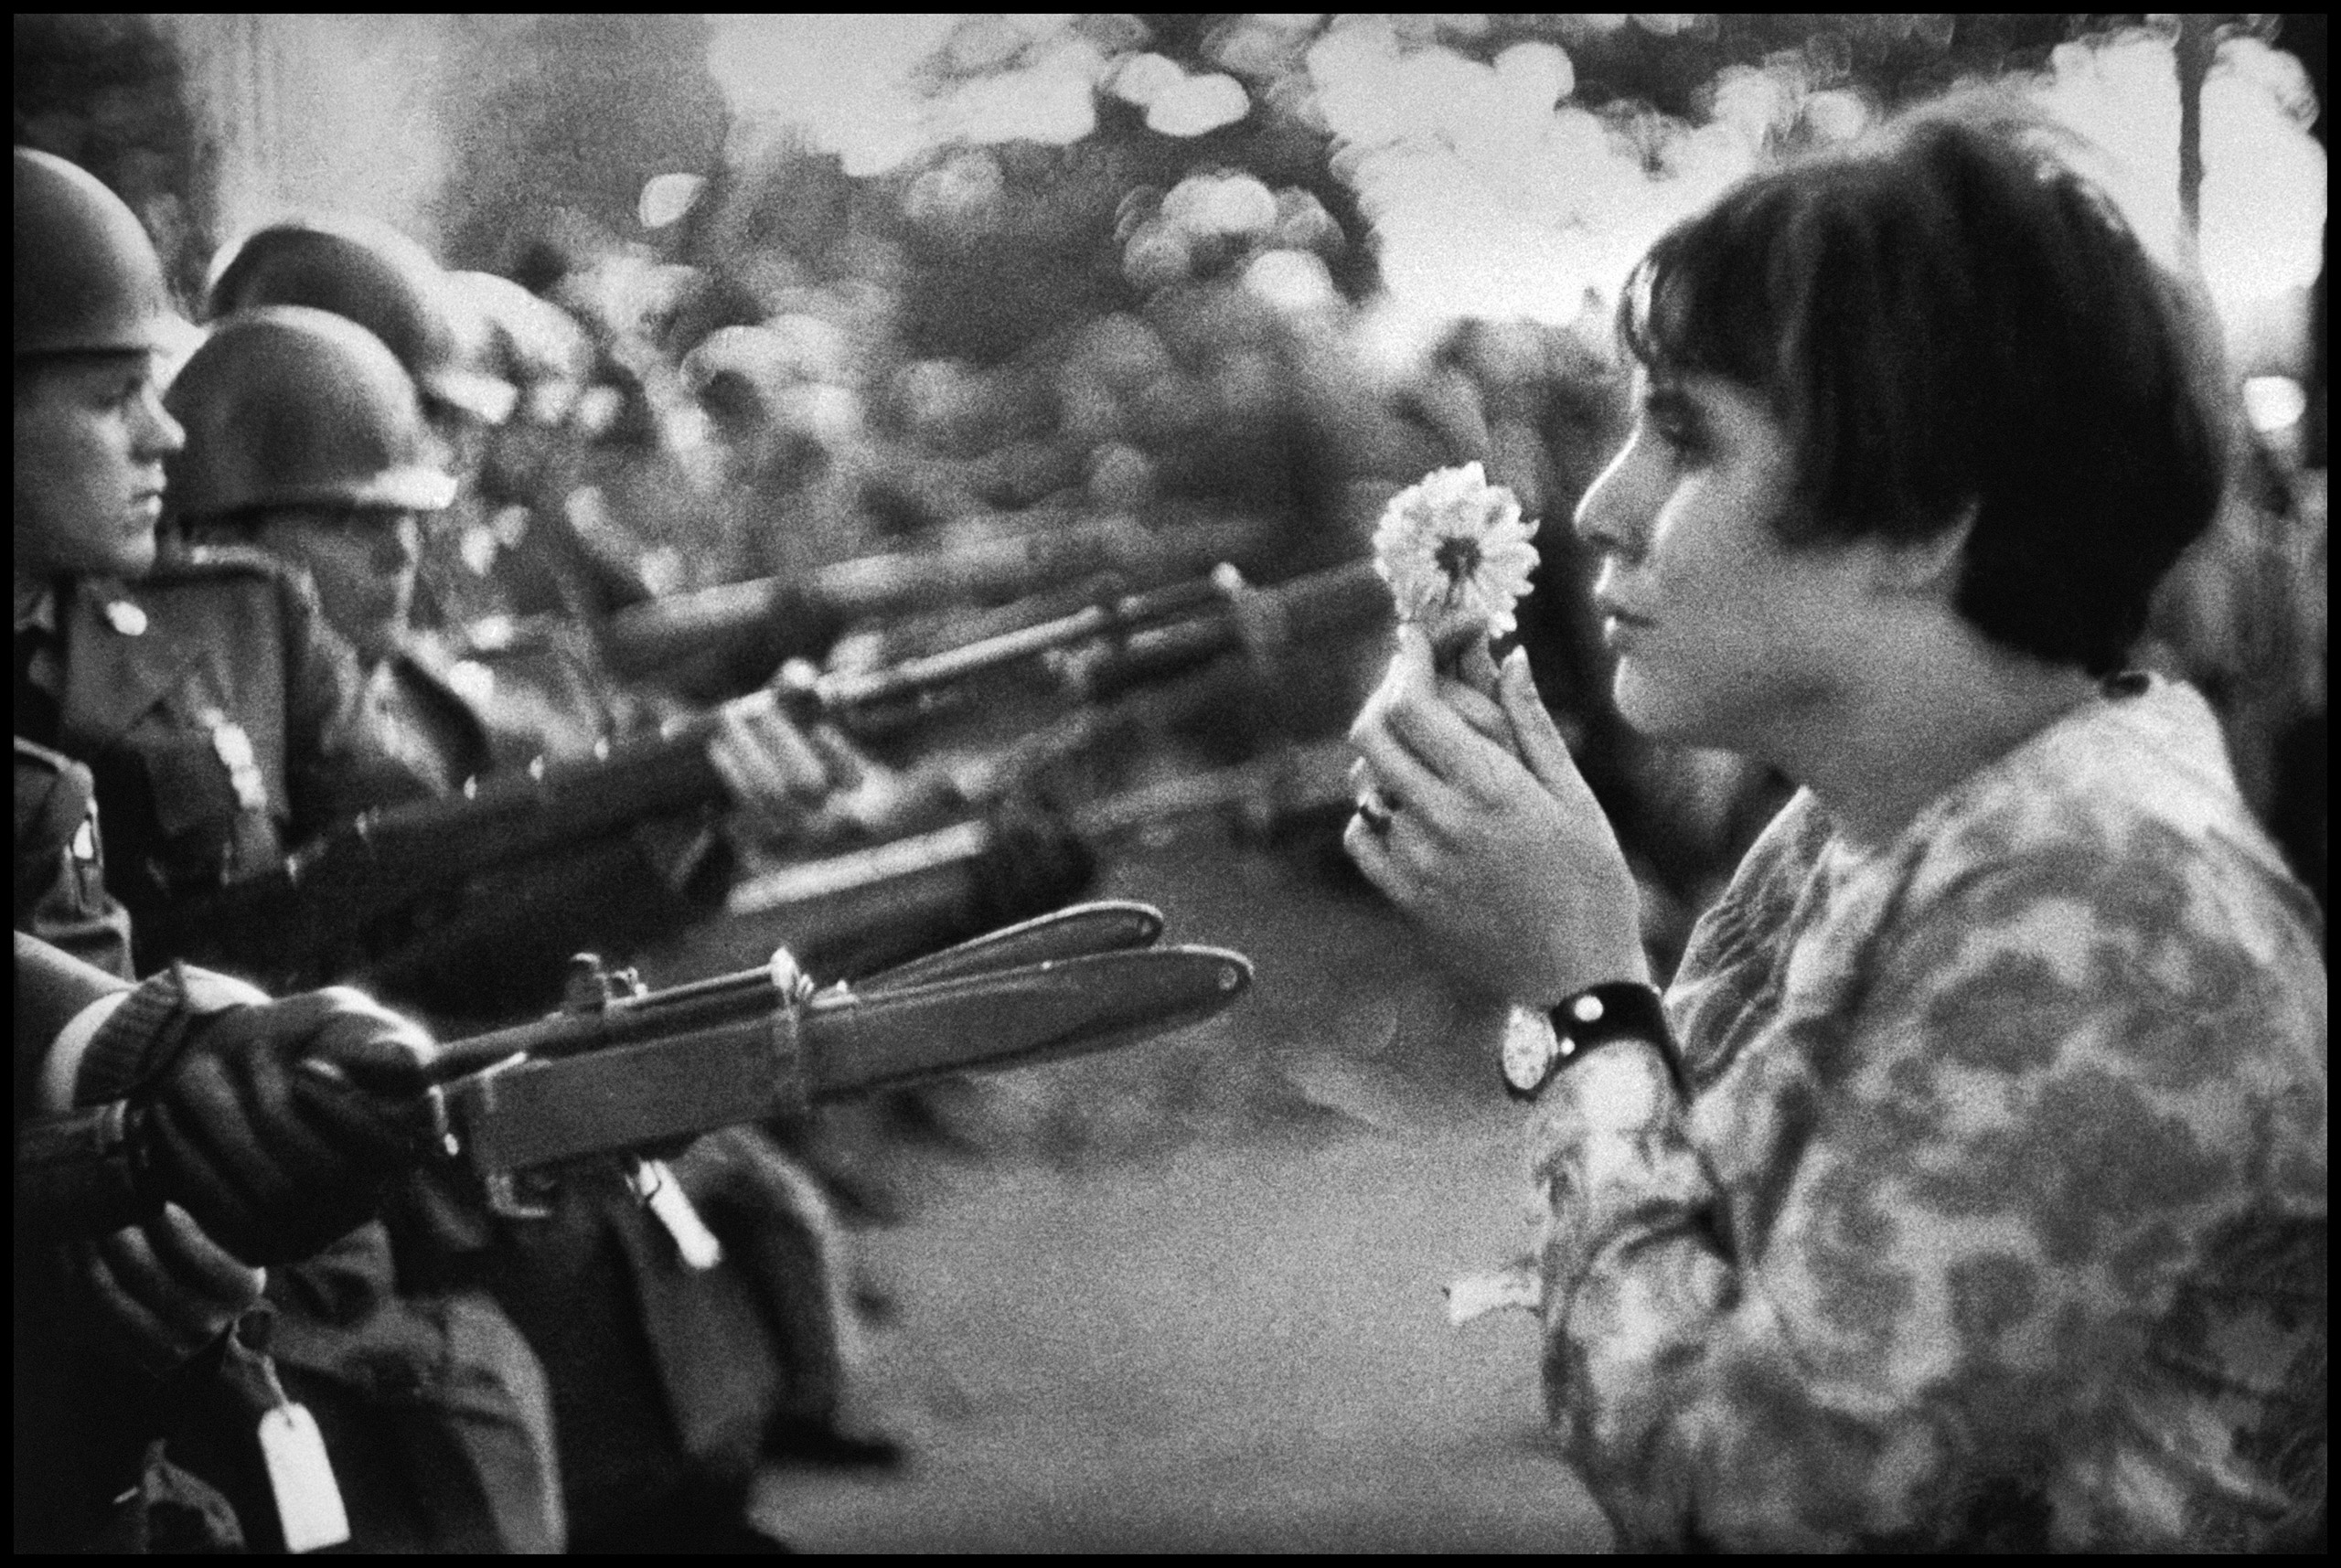 Jan Rose Kasmir confronts the American National Guard outside the Pentagon during the 1967 anti-Vietnam march. This march helped to turn public opinion against the U.S. war in Vietnam.